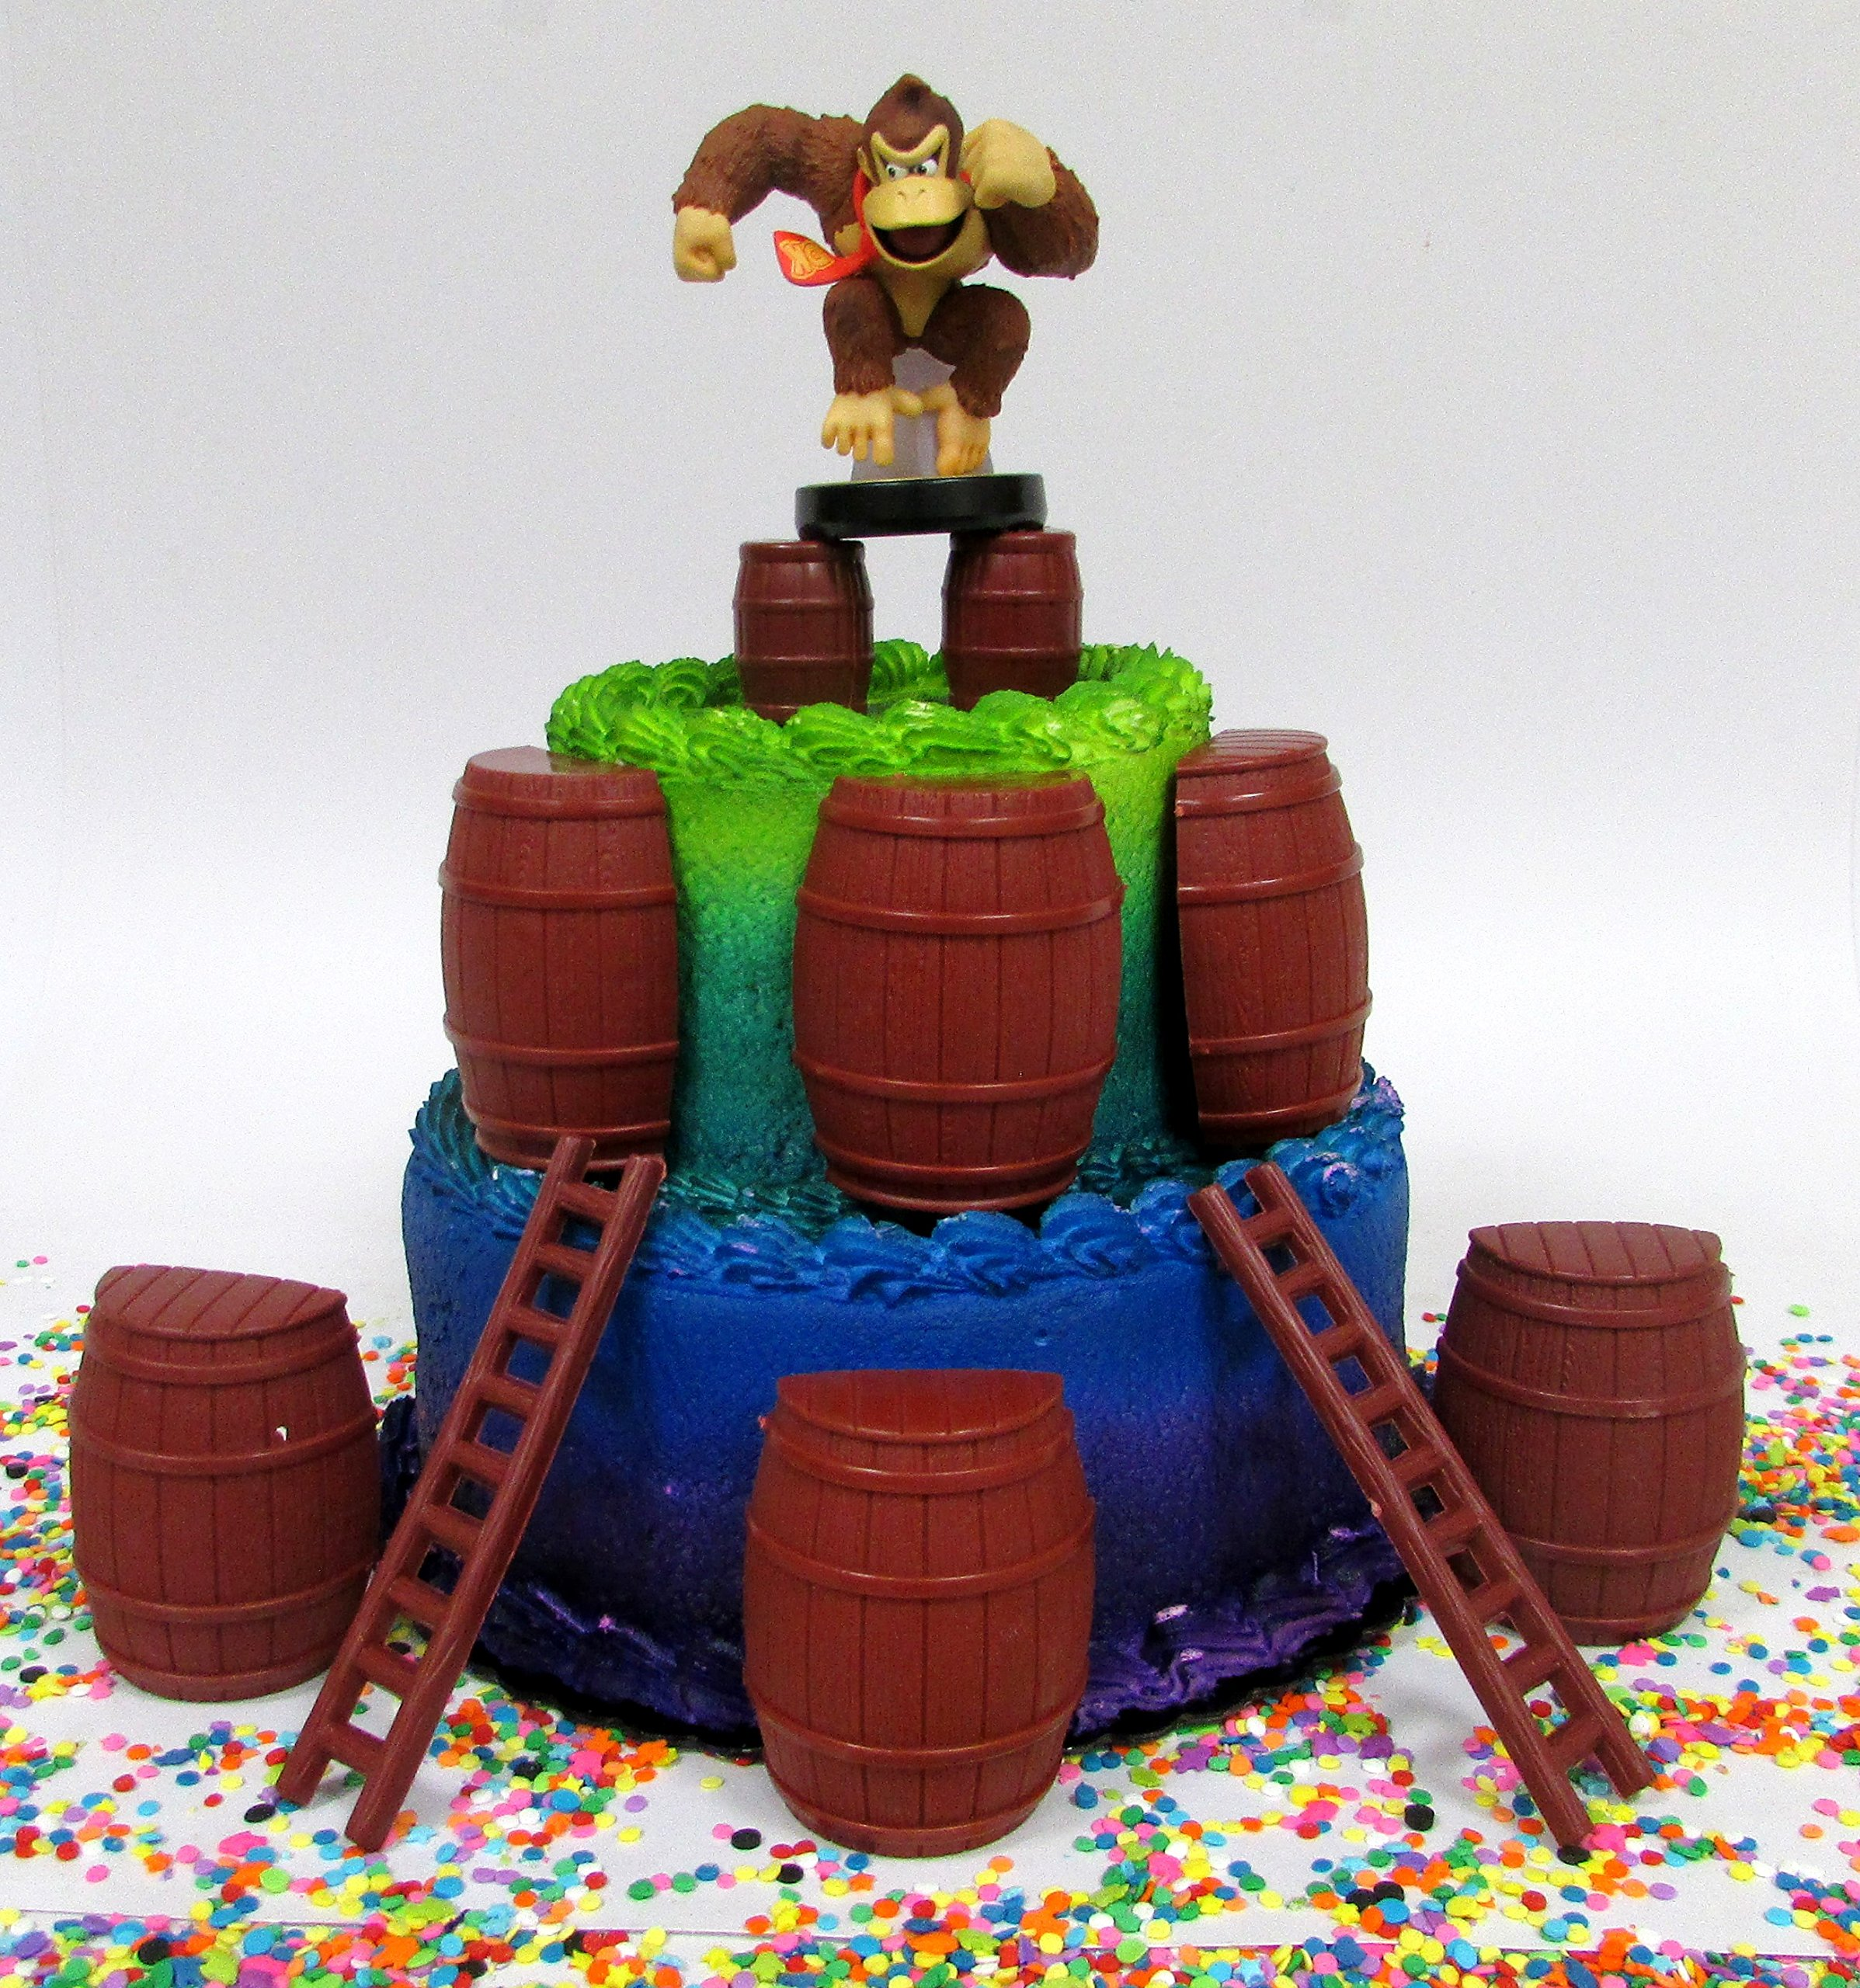 Video Game Icon DONKEY KONG Birthday Cake Topper Set Featuring Donkey Kong Figures and Decorative Themed Accessories